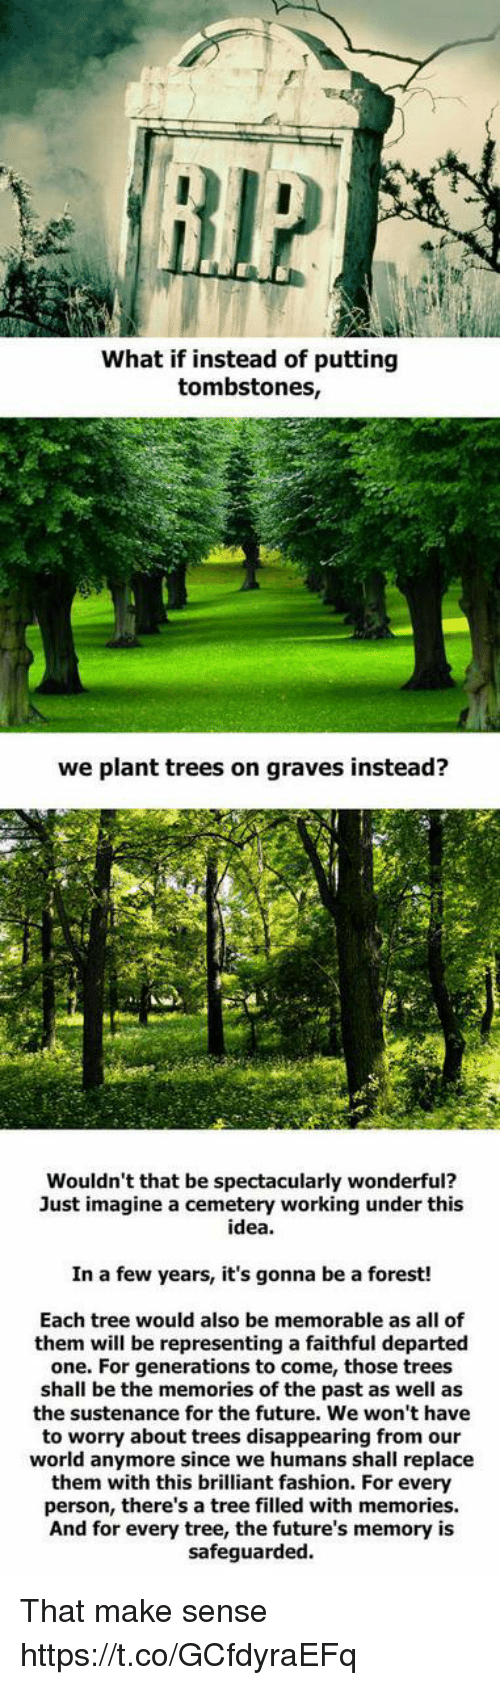 departed: What if instead of putting  tombstones,  we plant trees on graves instead?  Wouldn't that be spectacularly wonderful?  Just imagine a cemetery working under this  idea.  In a few years, it's gonna be a forest!  Each tree would also be memorable as all of  them will be representing a faithful departed  one. For generations to come, those trees  shall be the memories of the past as well as  the sustenance for the future. We won't have  to worry about trees disappearing from our  world anymore since we humans shall replace  them with this brilliant fashion. For every  person, there's a tree filled with memories.  And for every tree, the future's memory is  safeguarded That make sense https://t.co/GCfdyraEFq